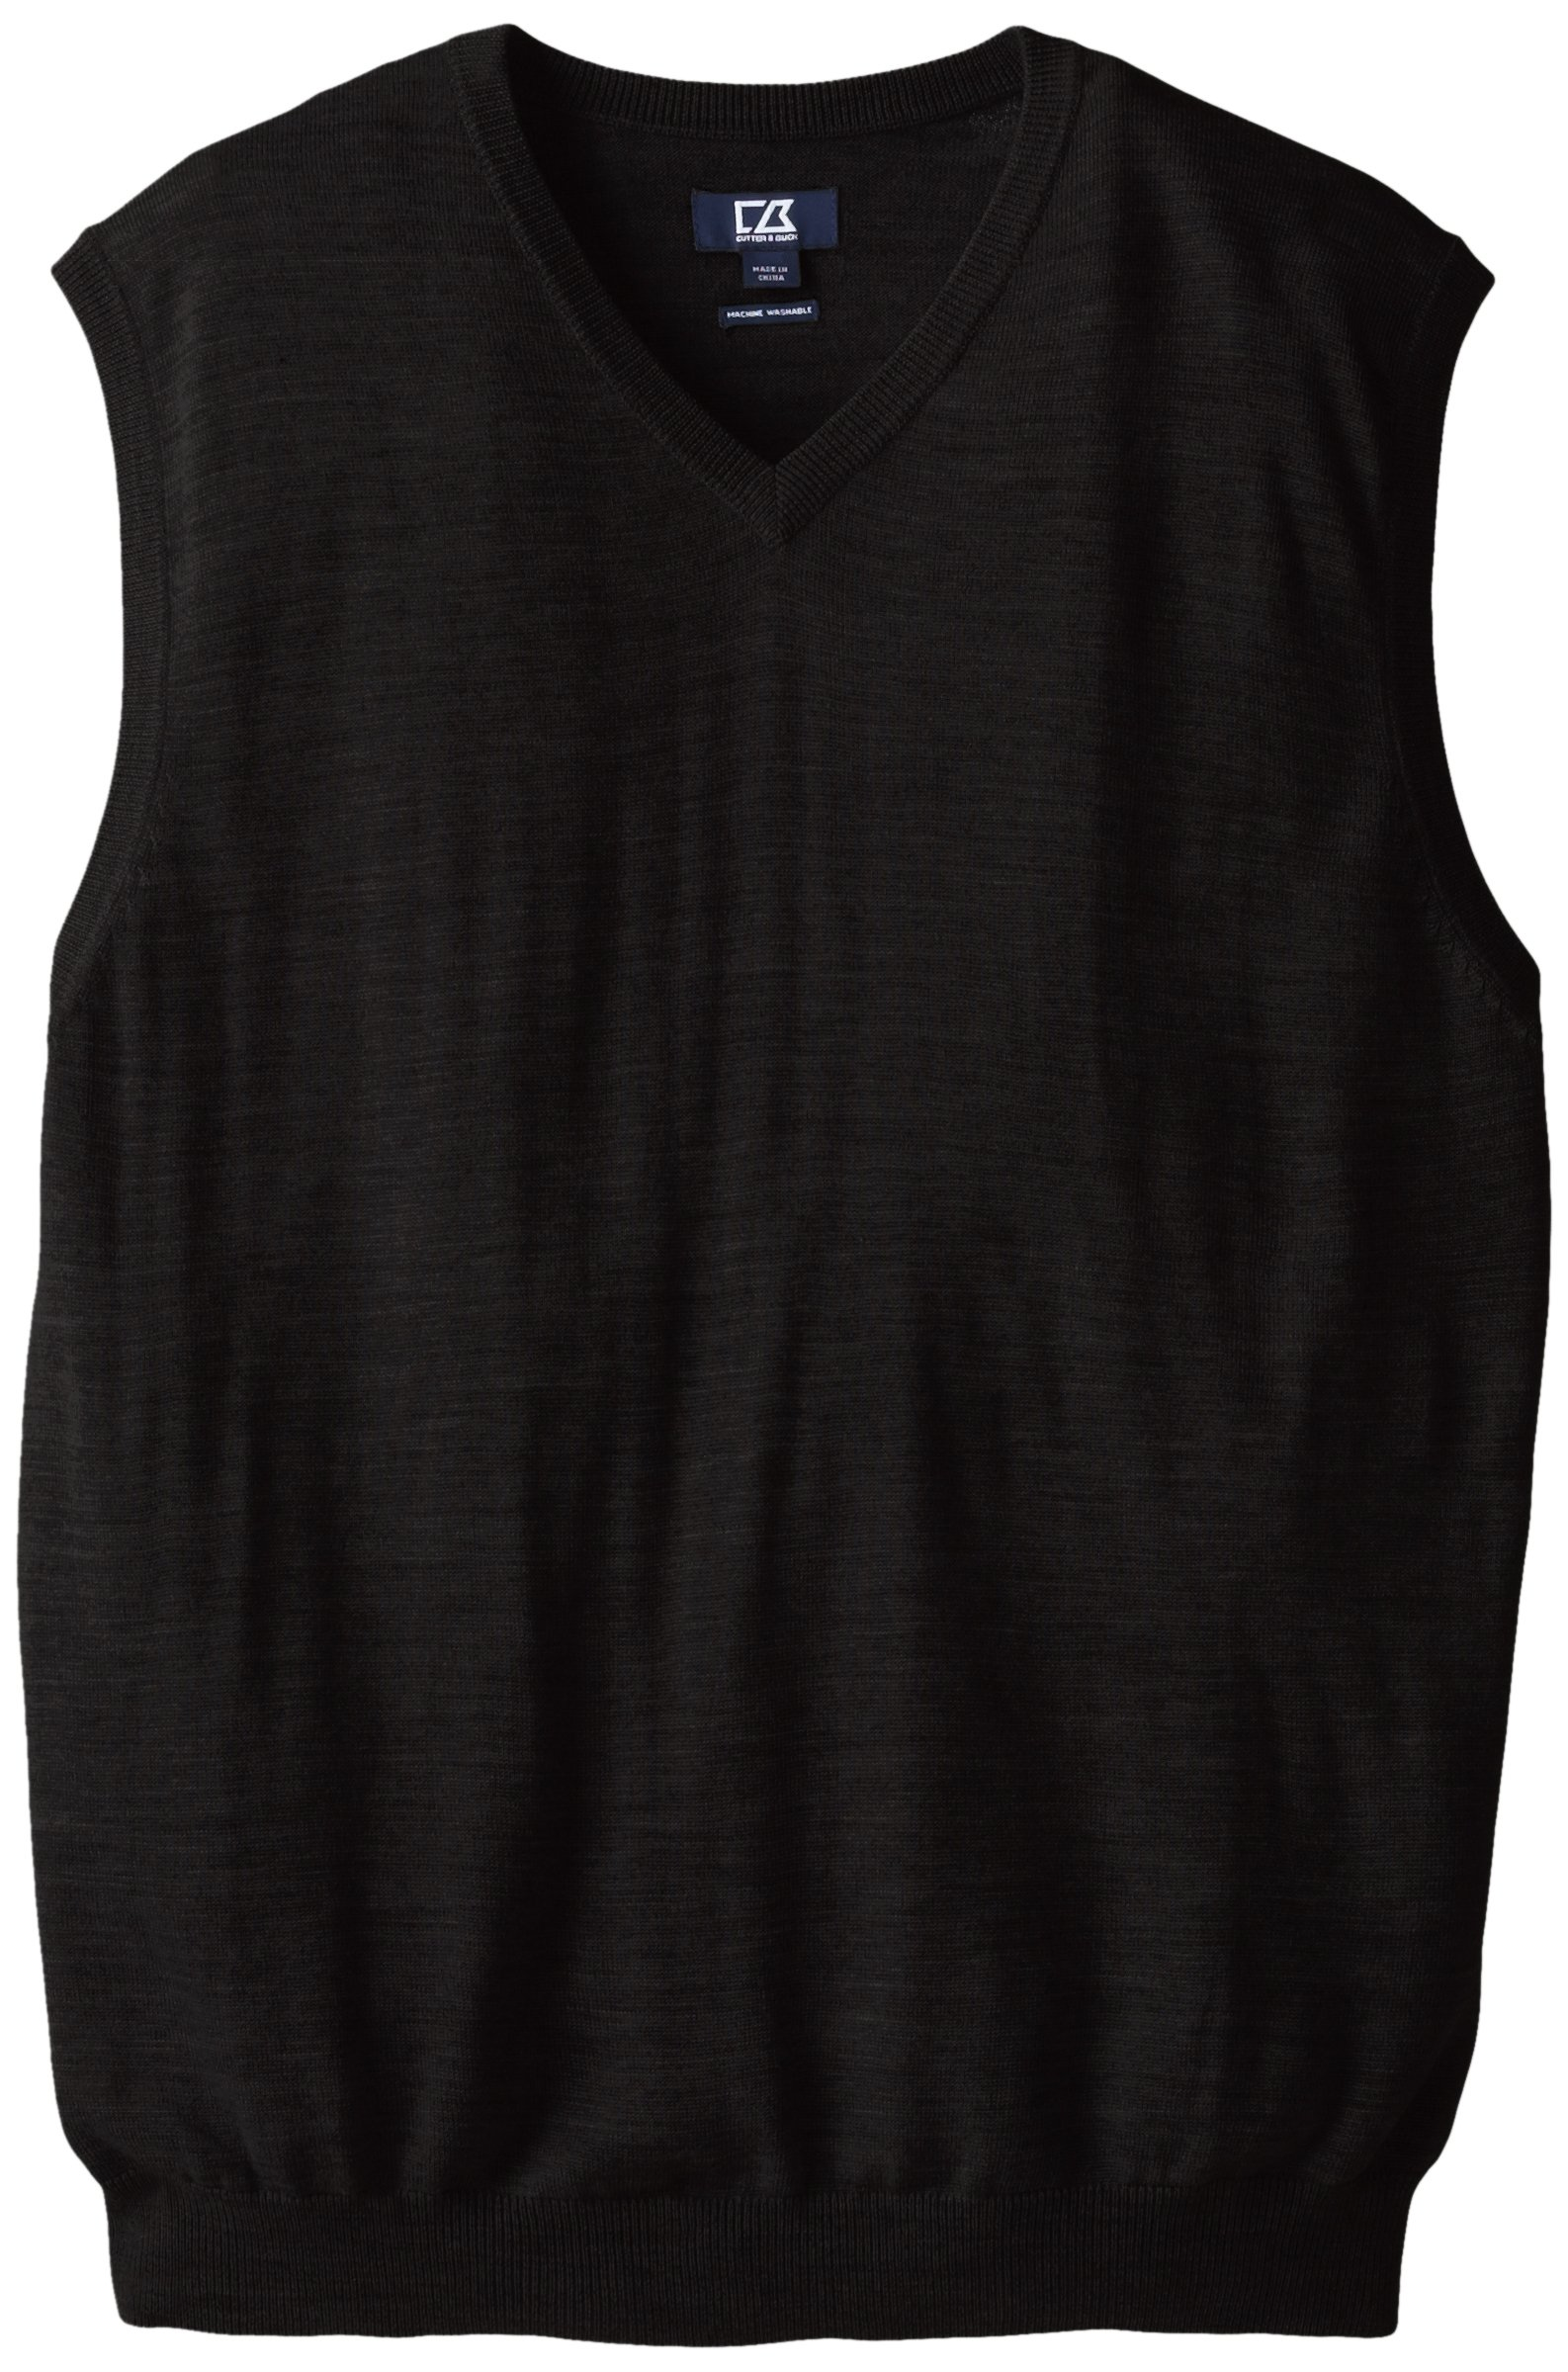 Cutter & Buck Men's Big-Tall Douglas V-Neck Sweater Vest, Black, 2X/Big